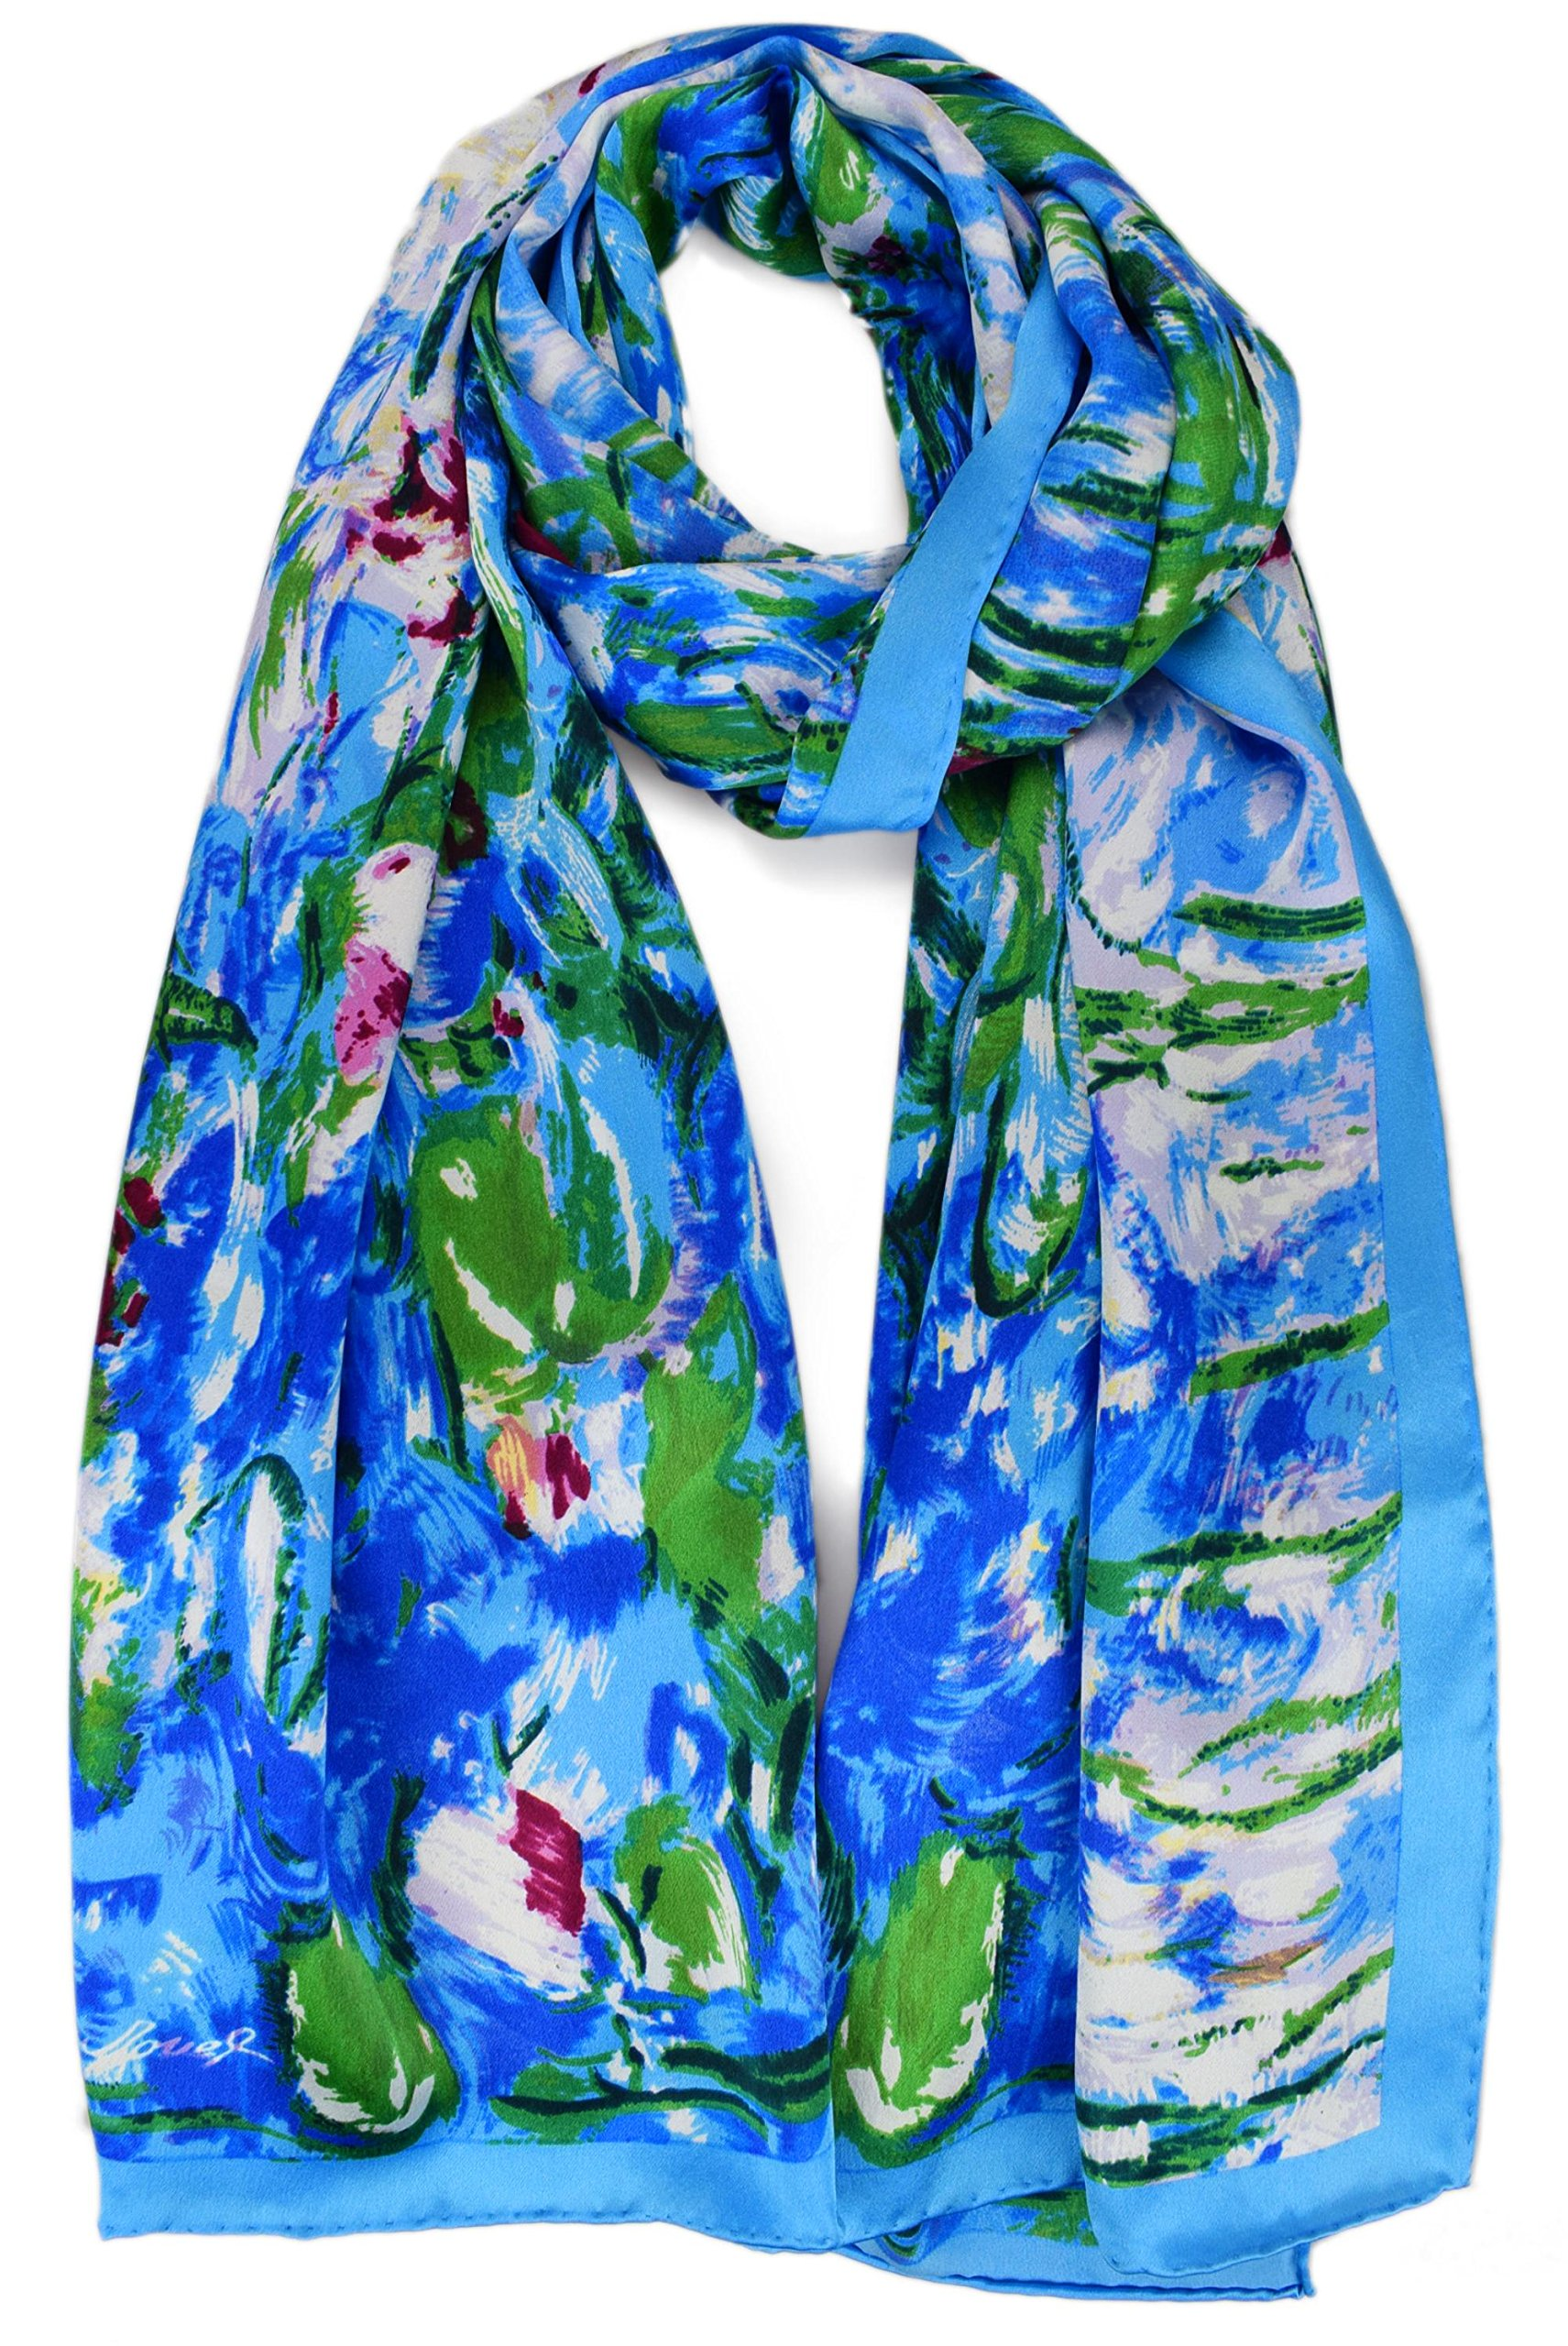 Luxurious 100% Charmeuse Silk Art Collection Long Scarf Shawl (Water Lilies)